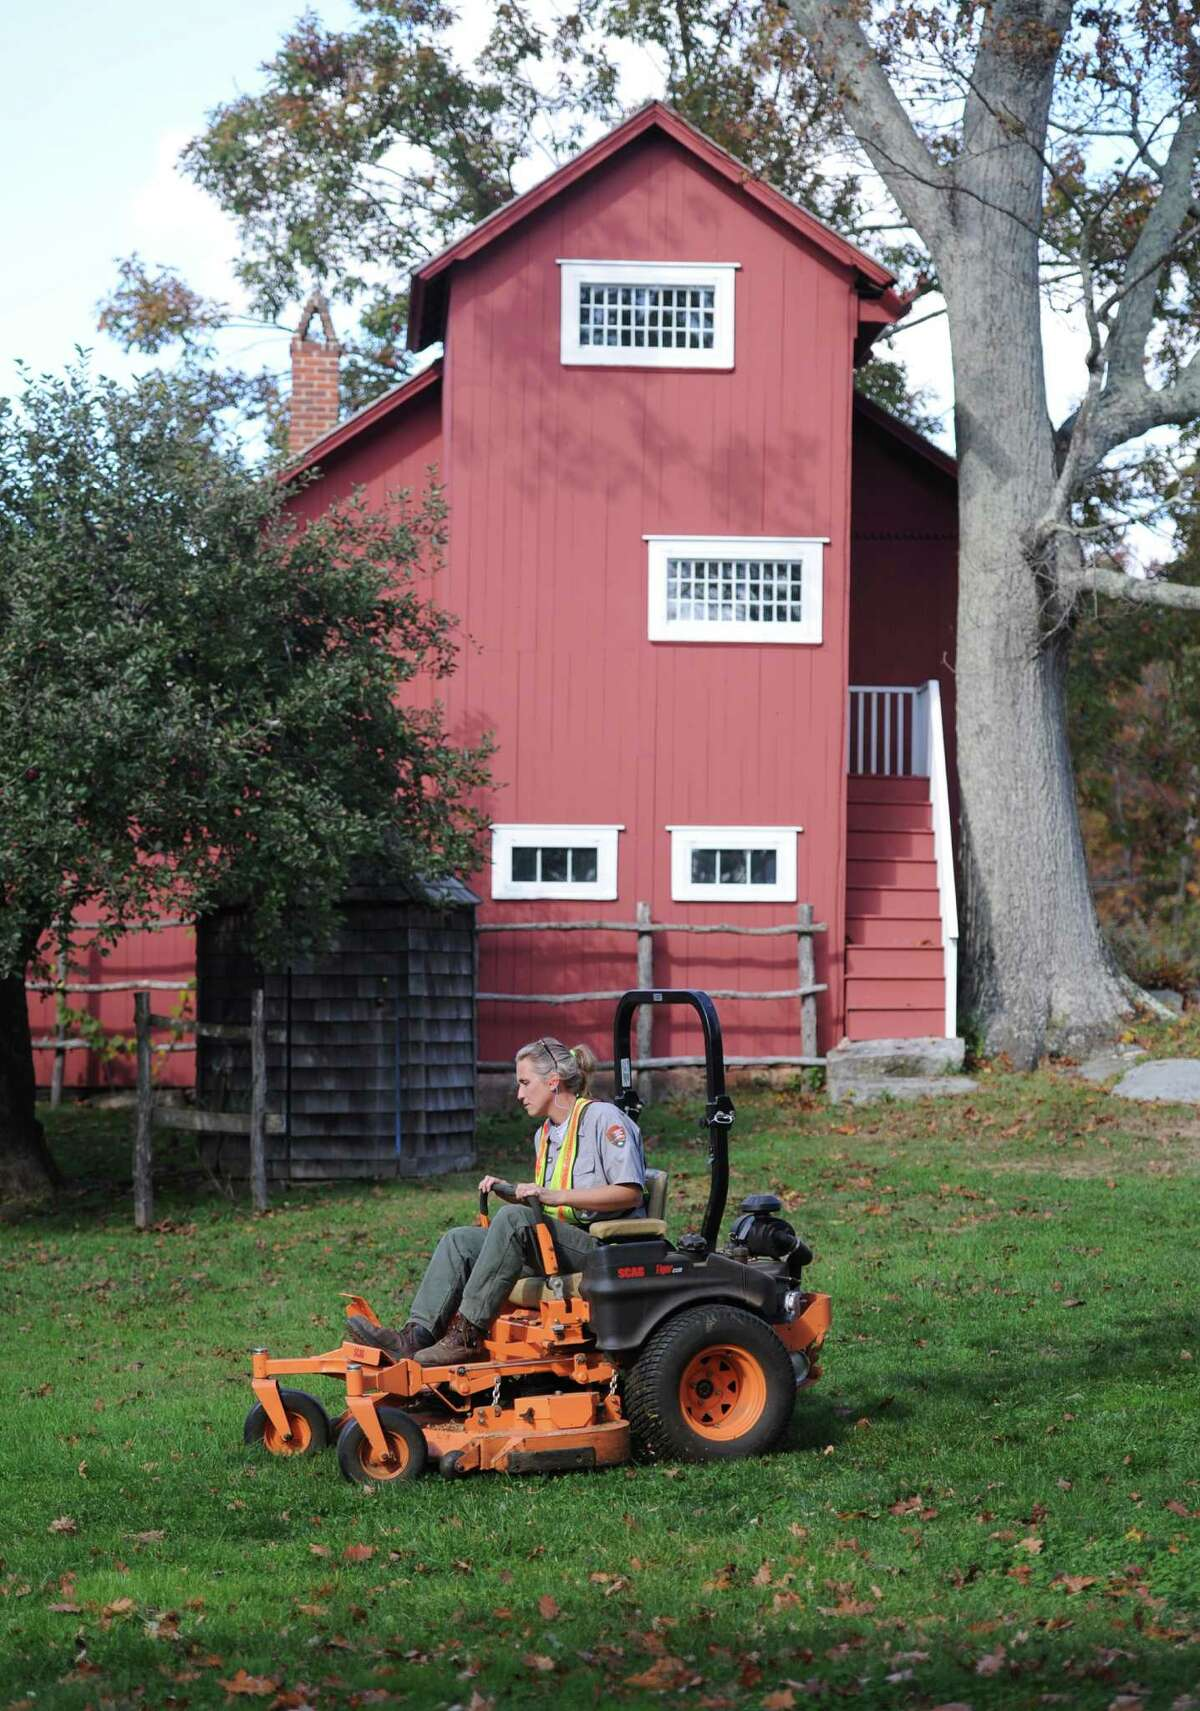 Historic Gardener Jill Anderson mows the grass outside Weir Studio at Weir Farm National Historic Site in Wilton, Conn. on Thursday, Oct. 17, 2013. The government-operated park re-opened Thursday with the end of the government shutdown. Employees and volunteers restored the property after more than two weeks off, allowing visitors to come back and enjoy the park.